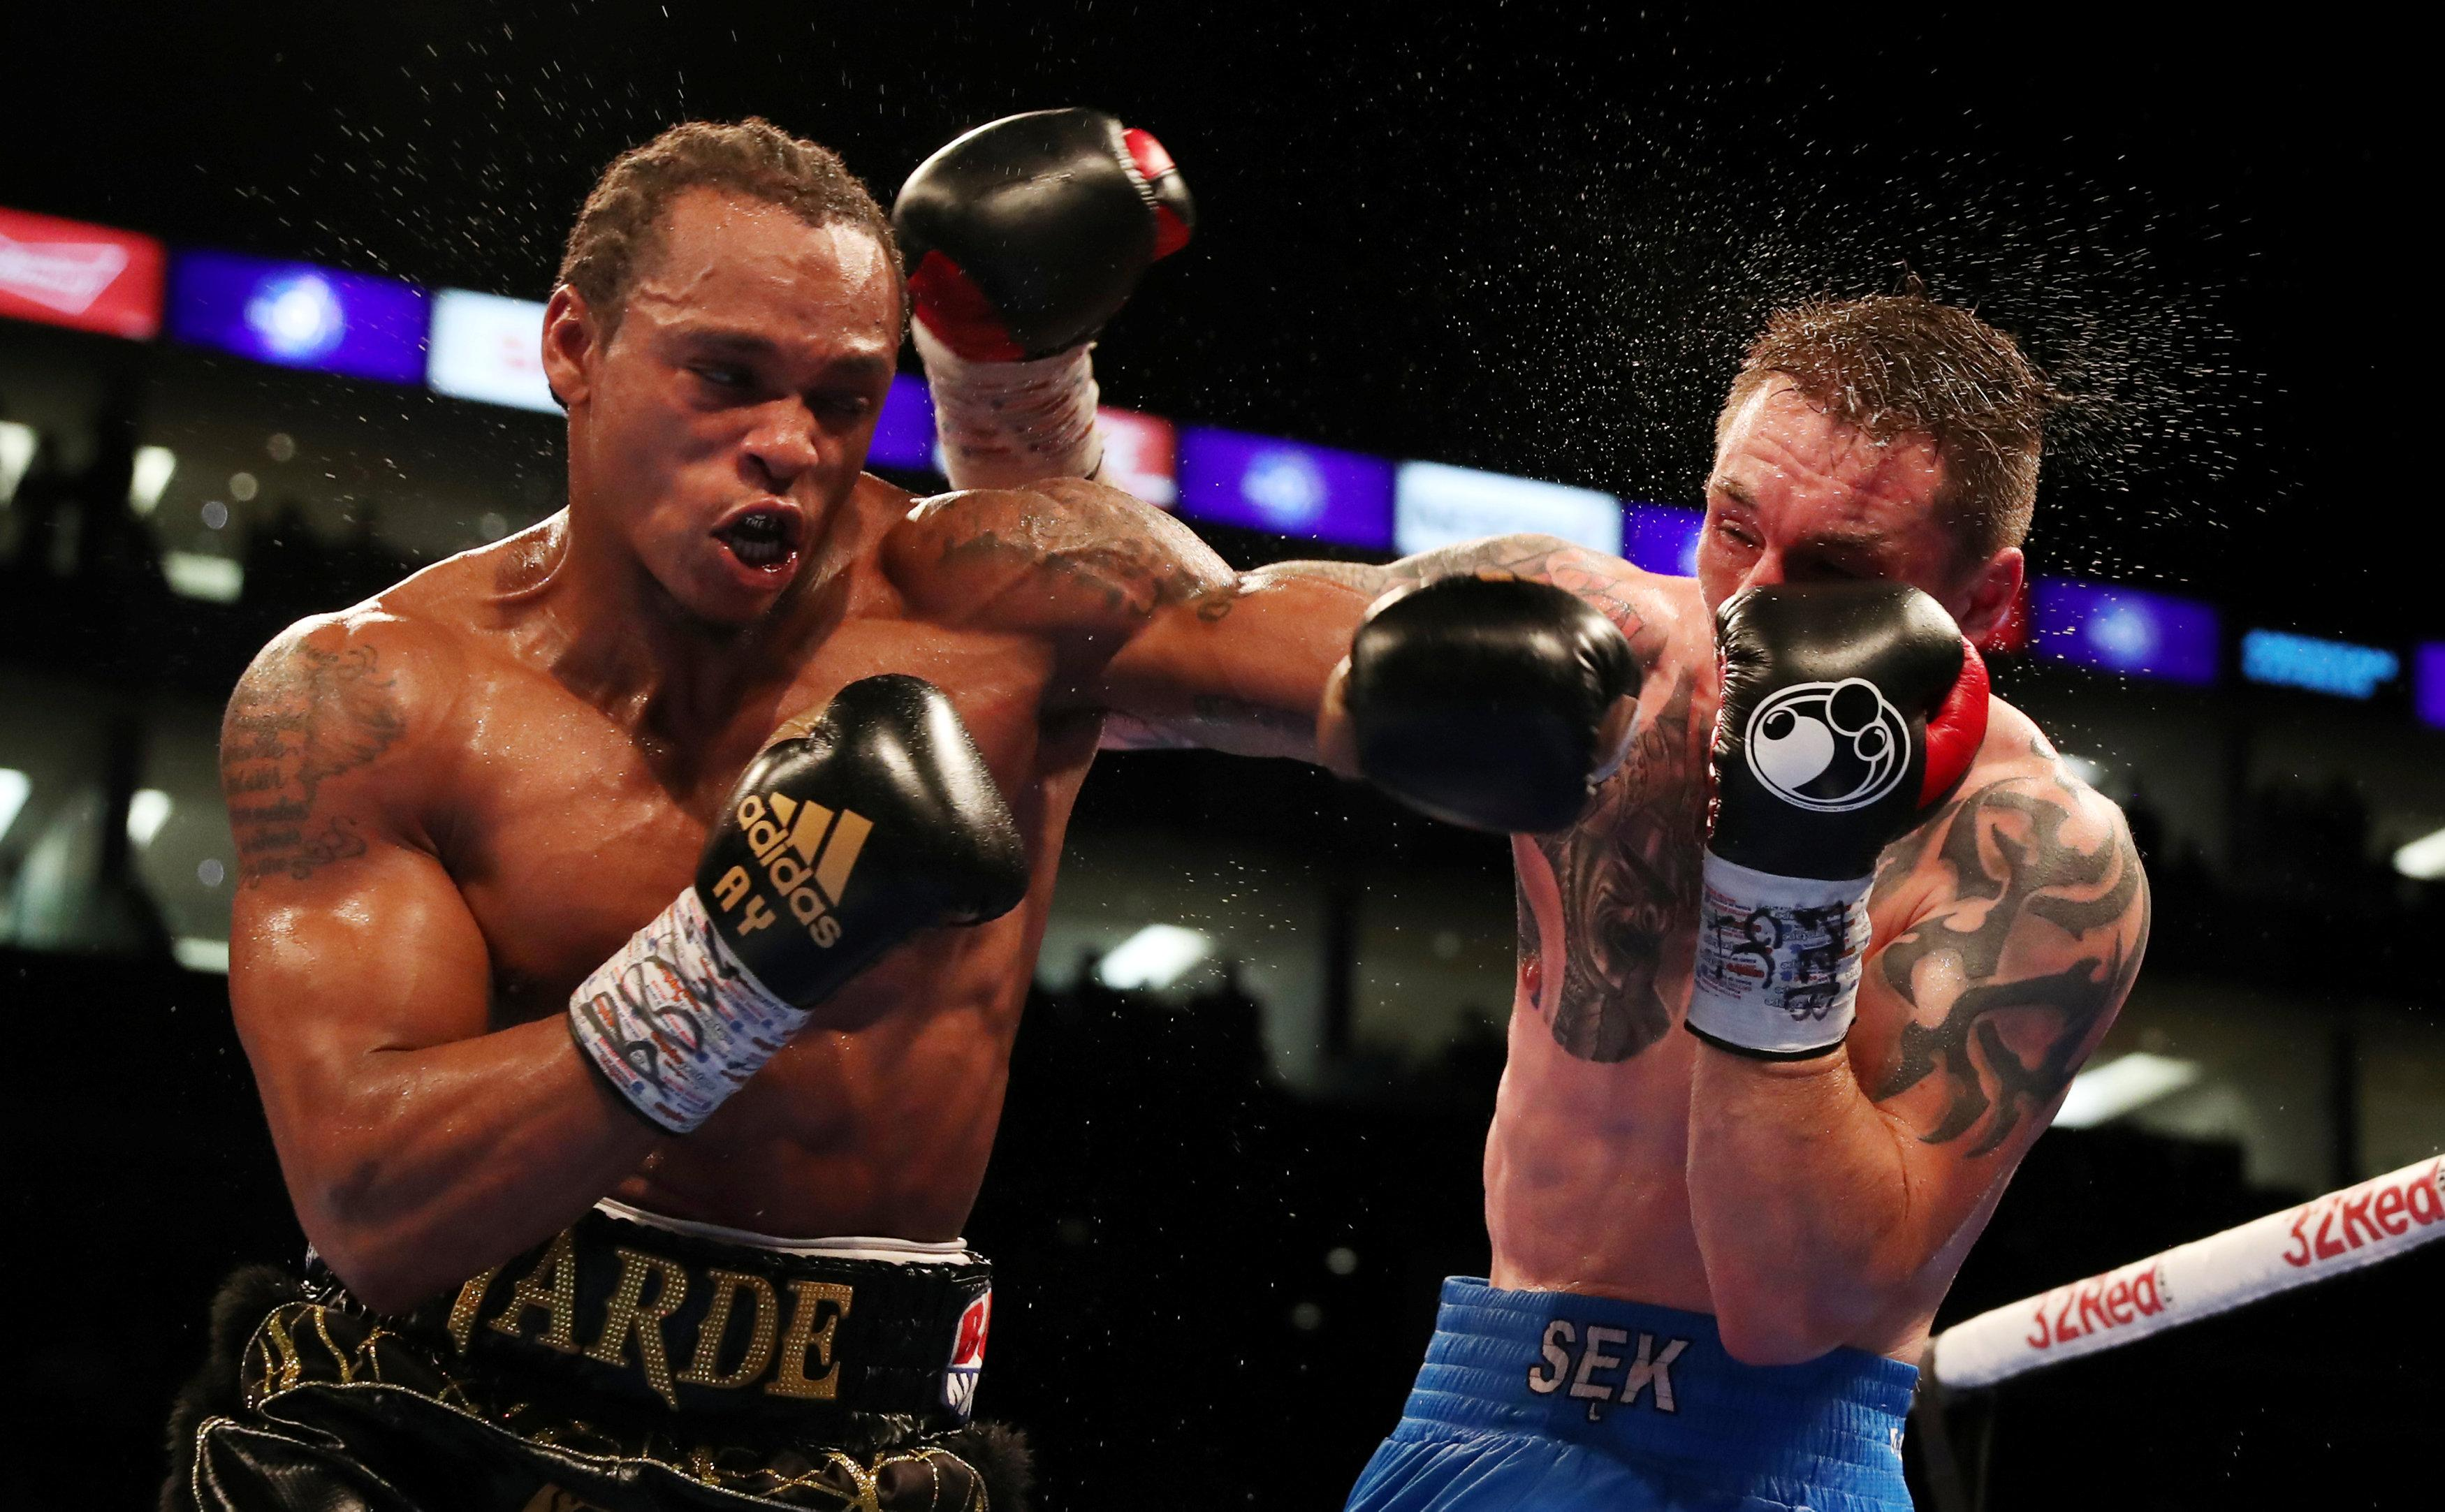 Anthony Yarde floored Polish brute Dariusz Sek within 90 seconds on his way to a massive win